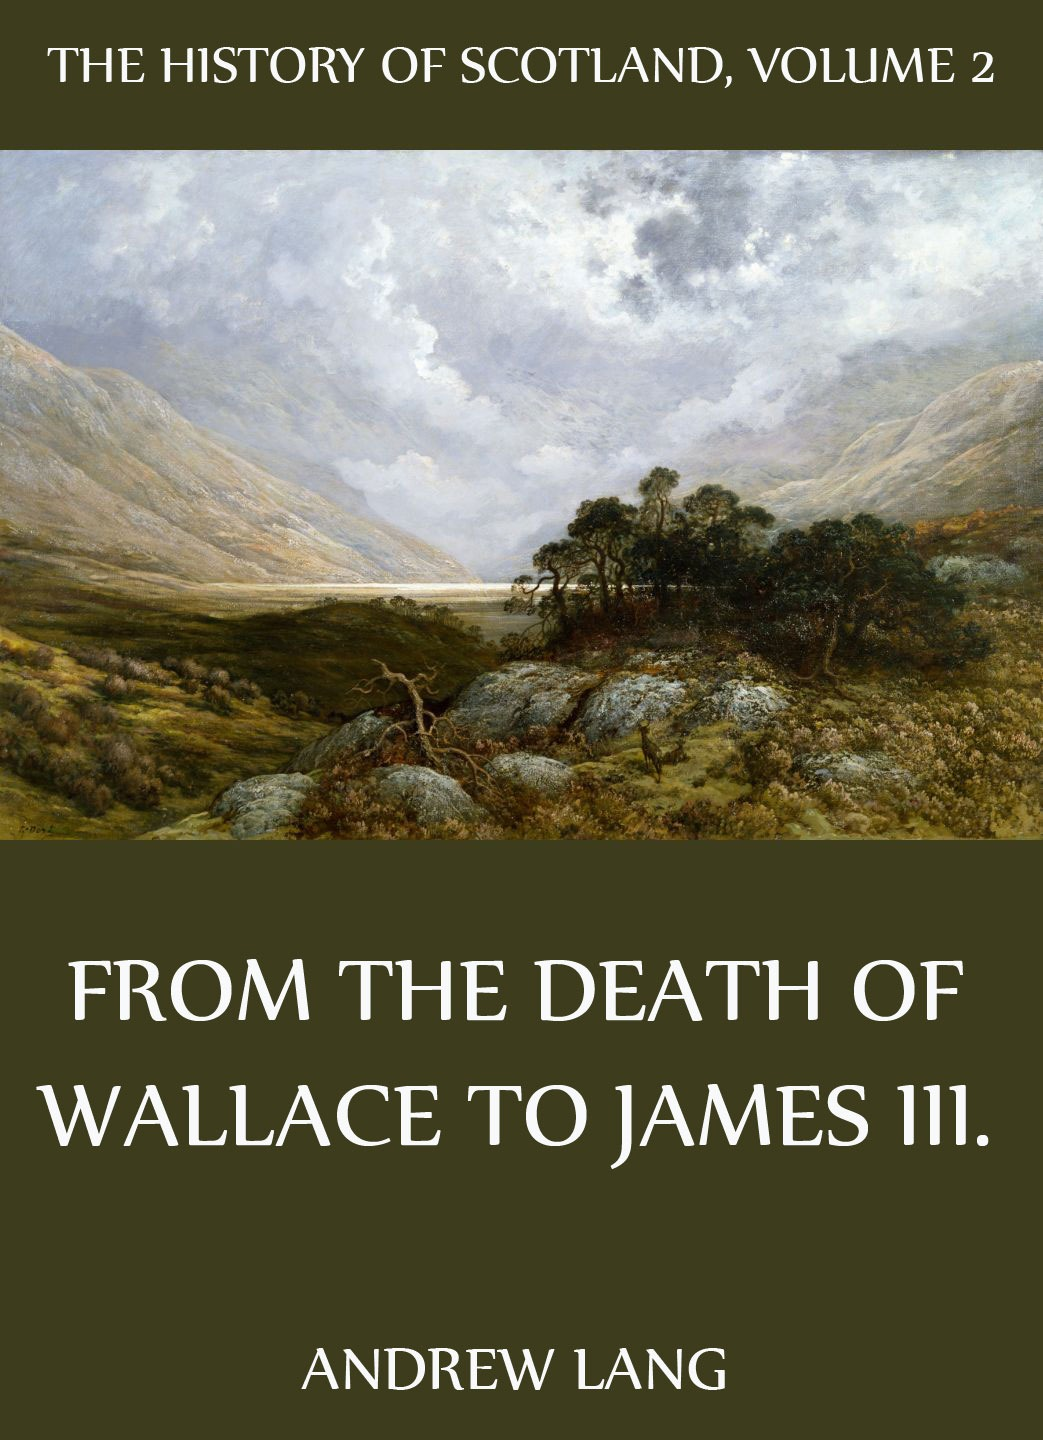 Andrew Lang The History Of Scotland - Volume 2: From The Death Of Wallace To James III. earth 2 volume 2 the tower of fate